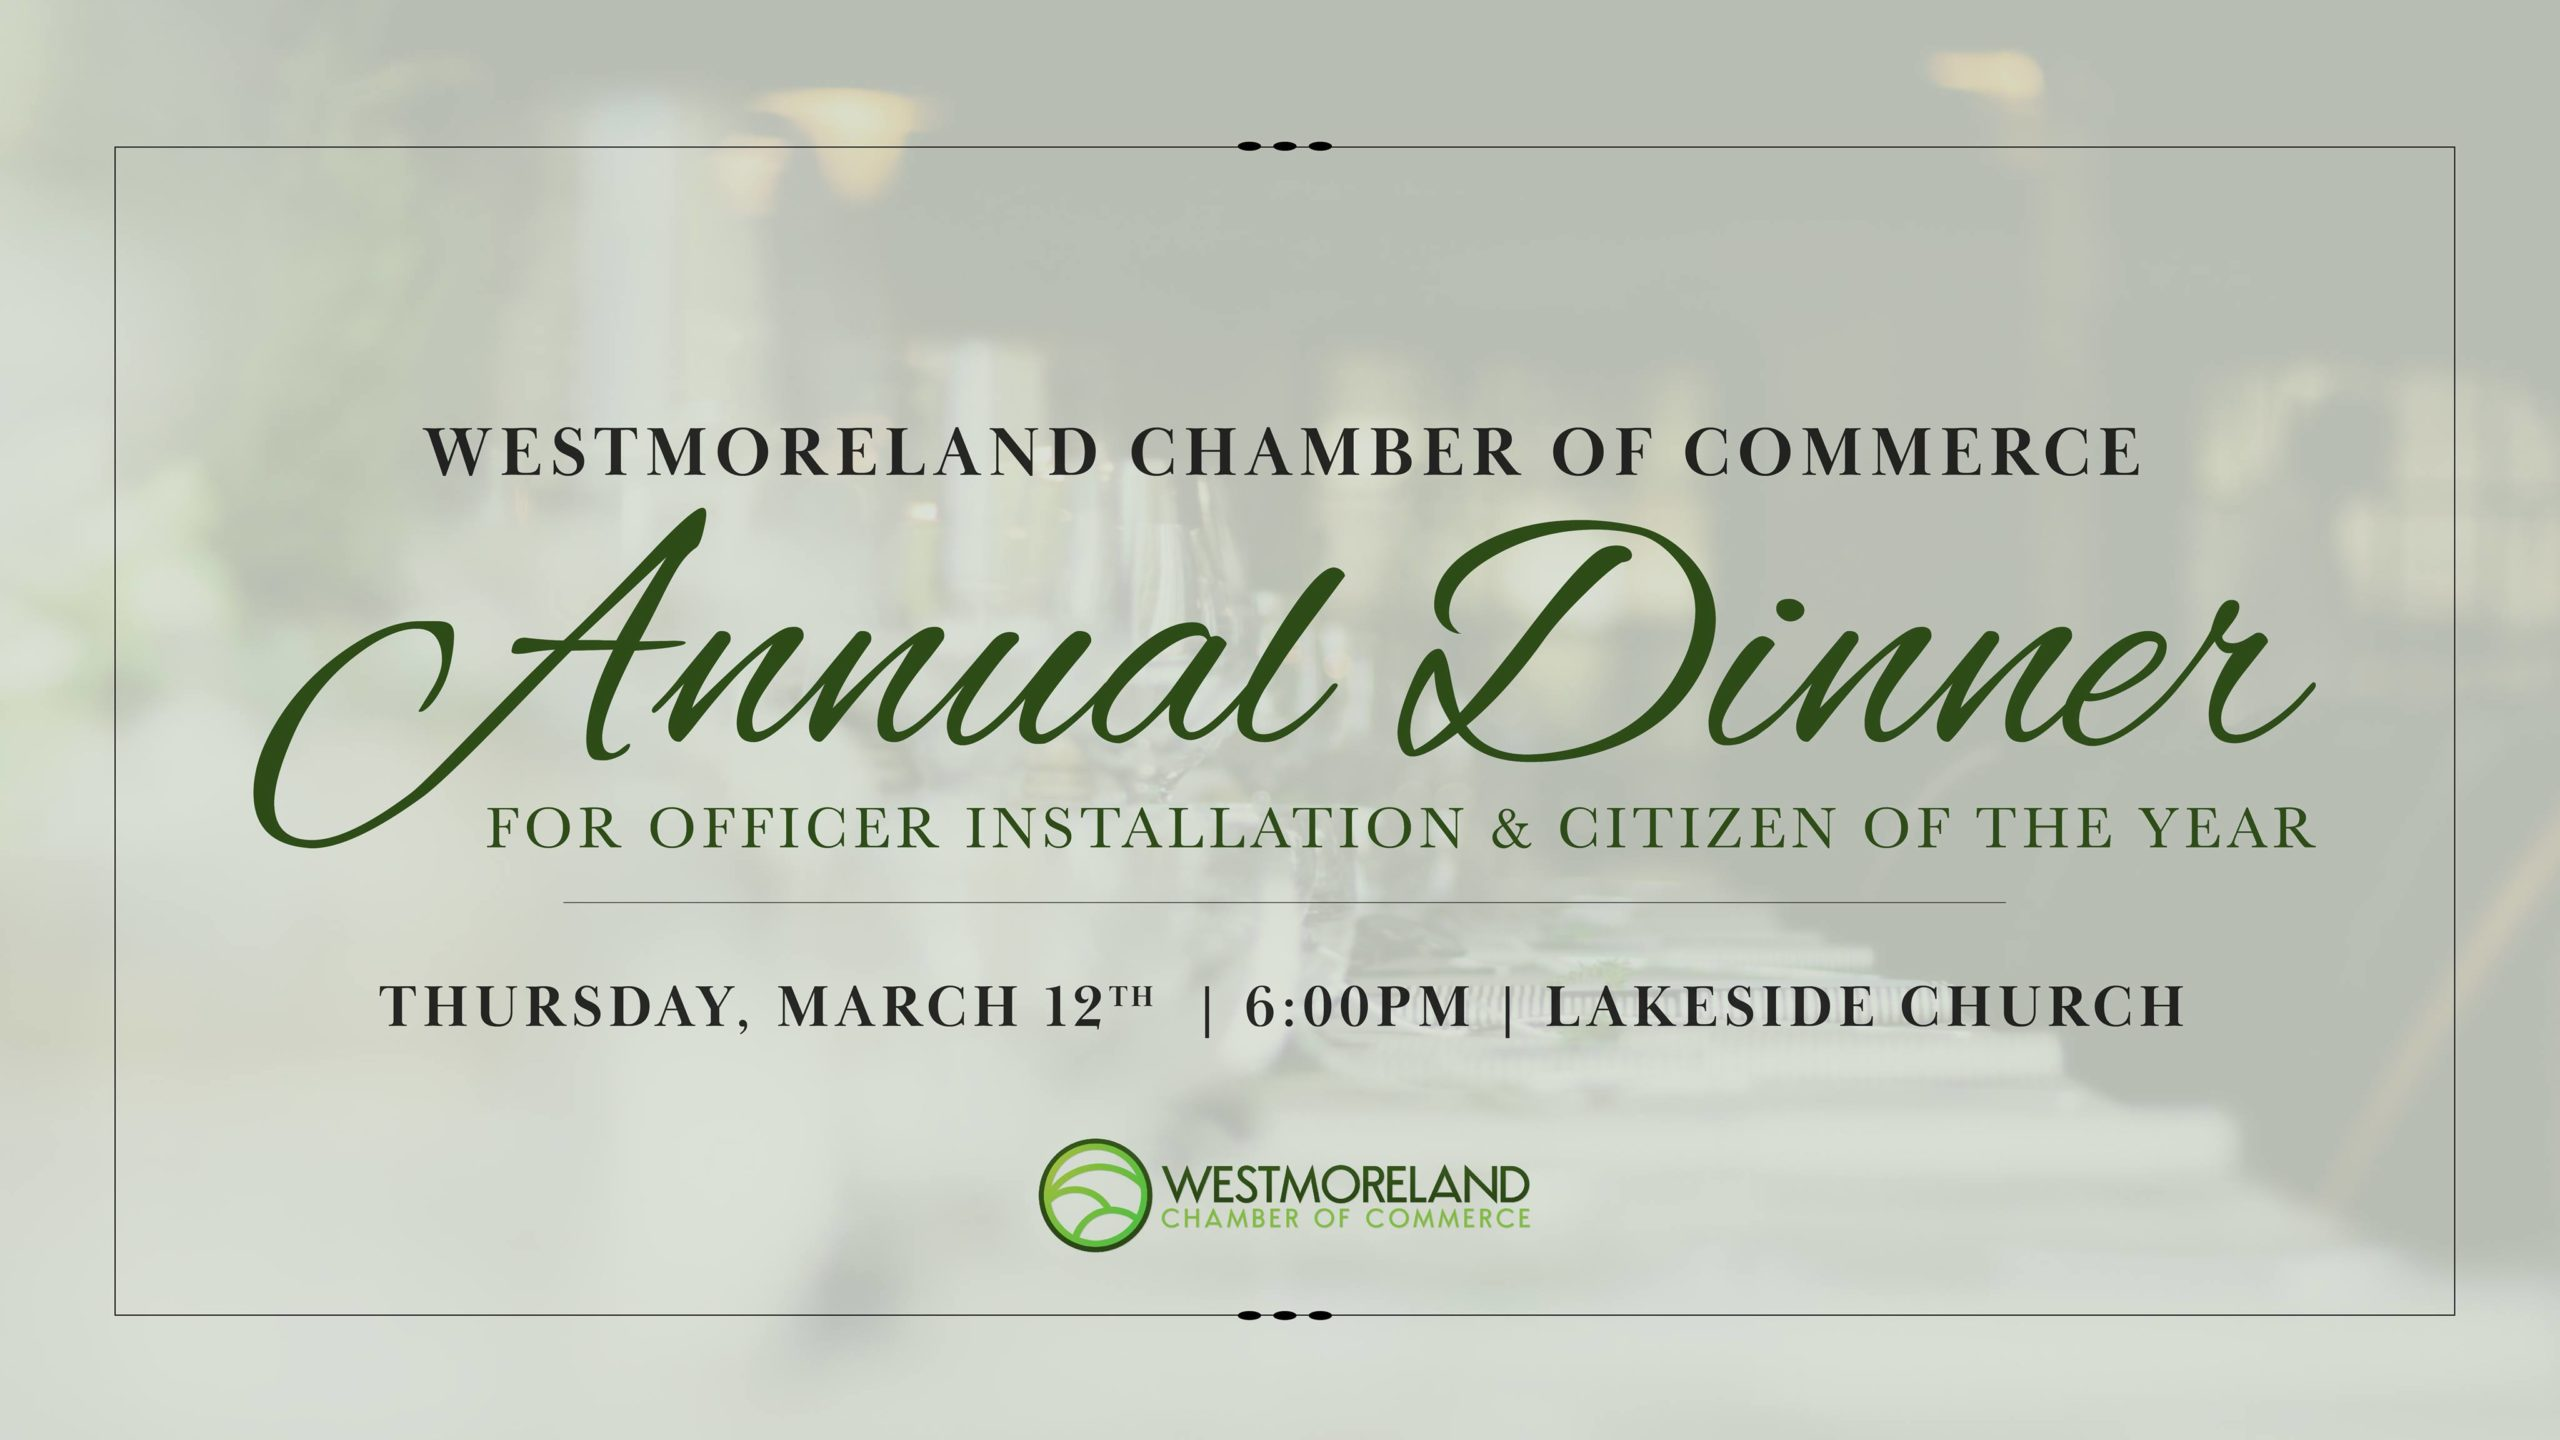 Westmoreland TN Chamber of Commerce Annual Banquet